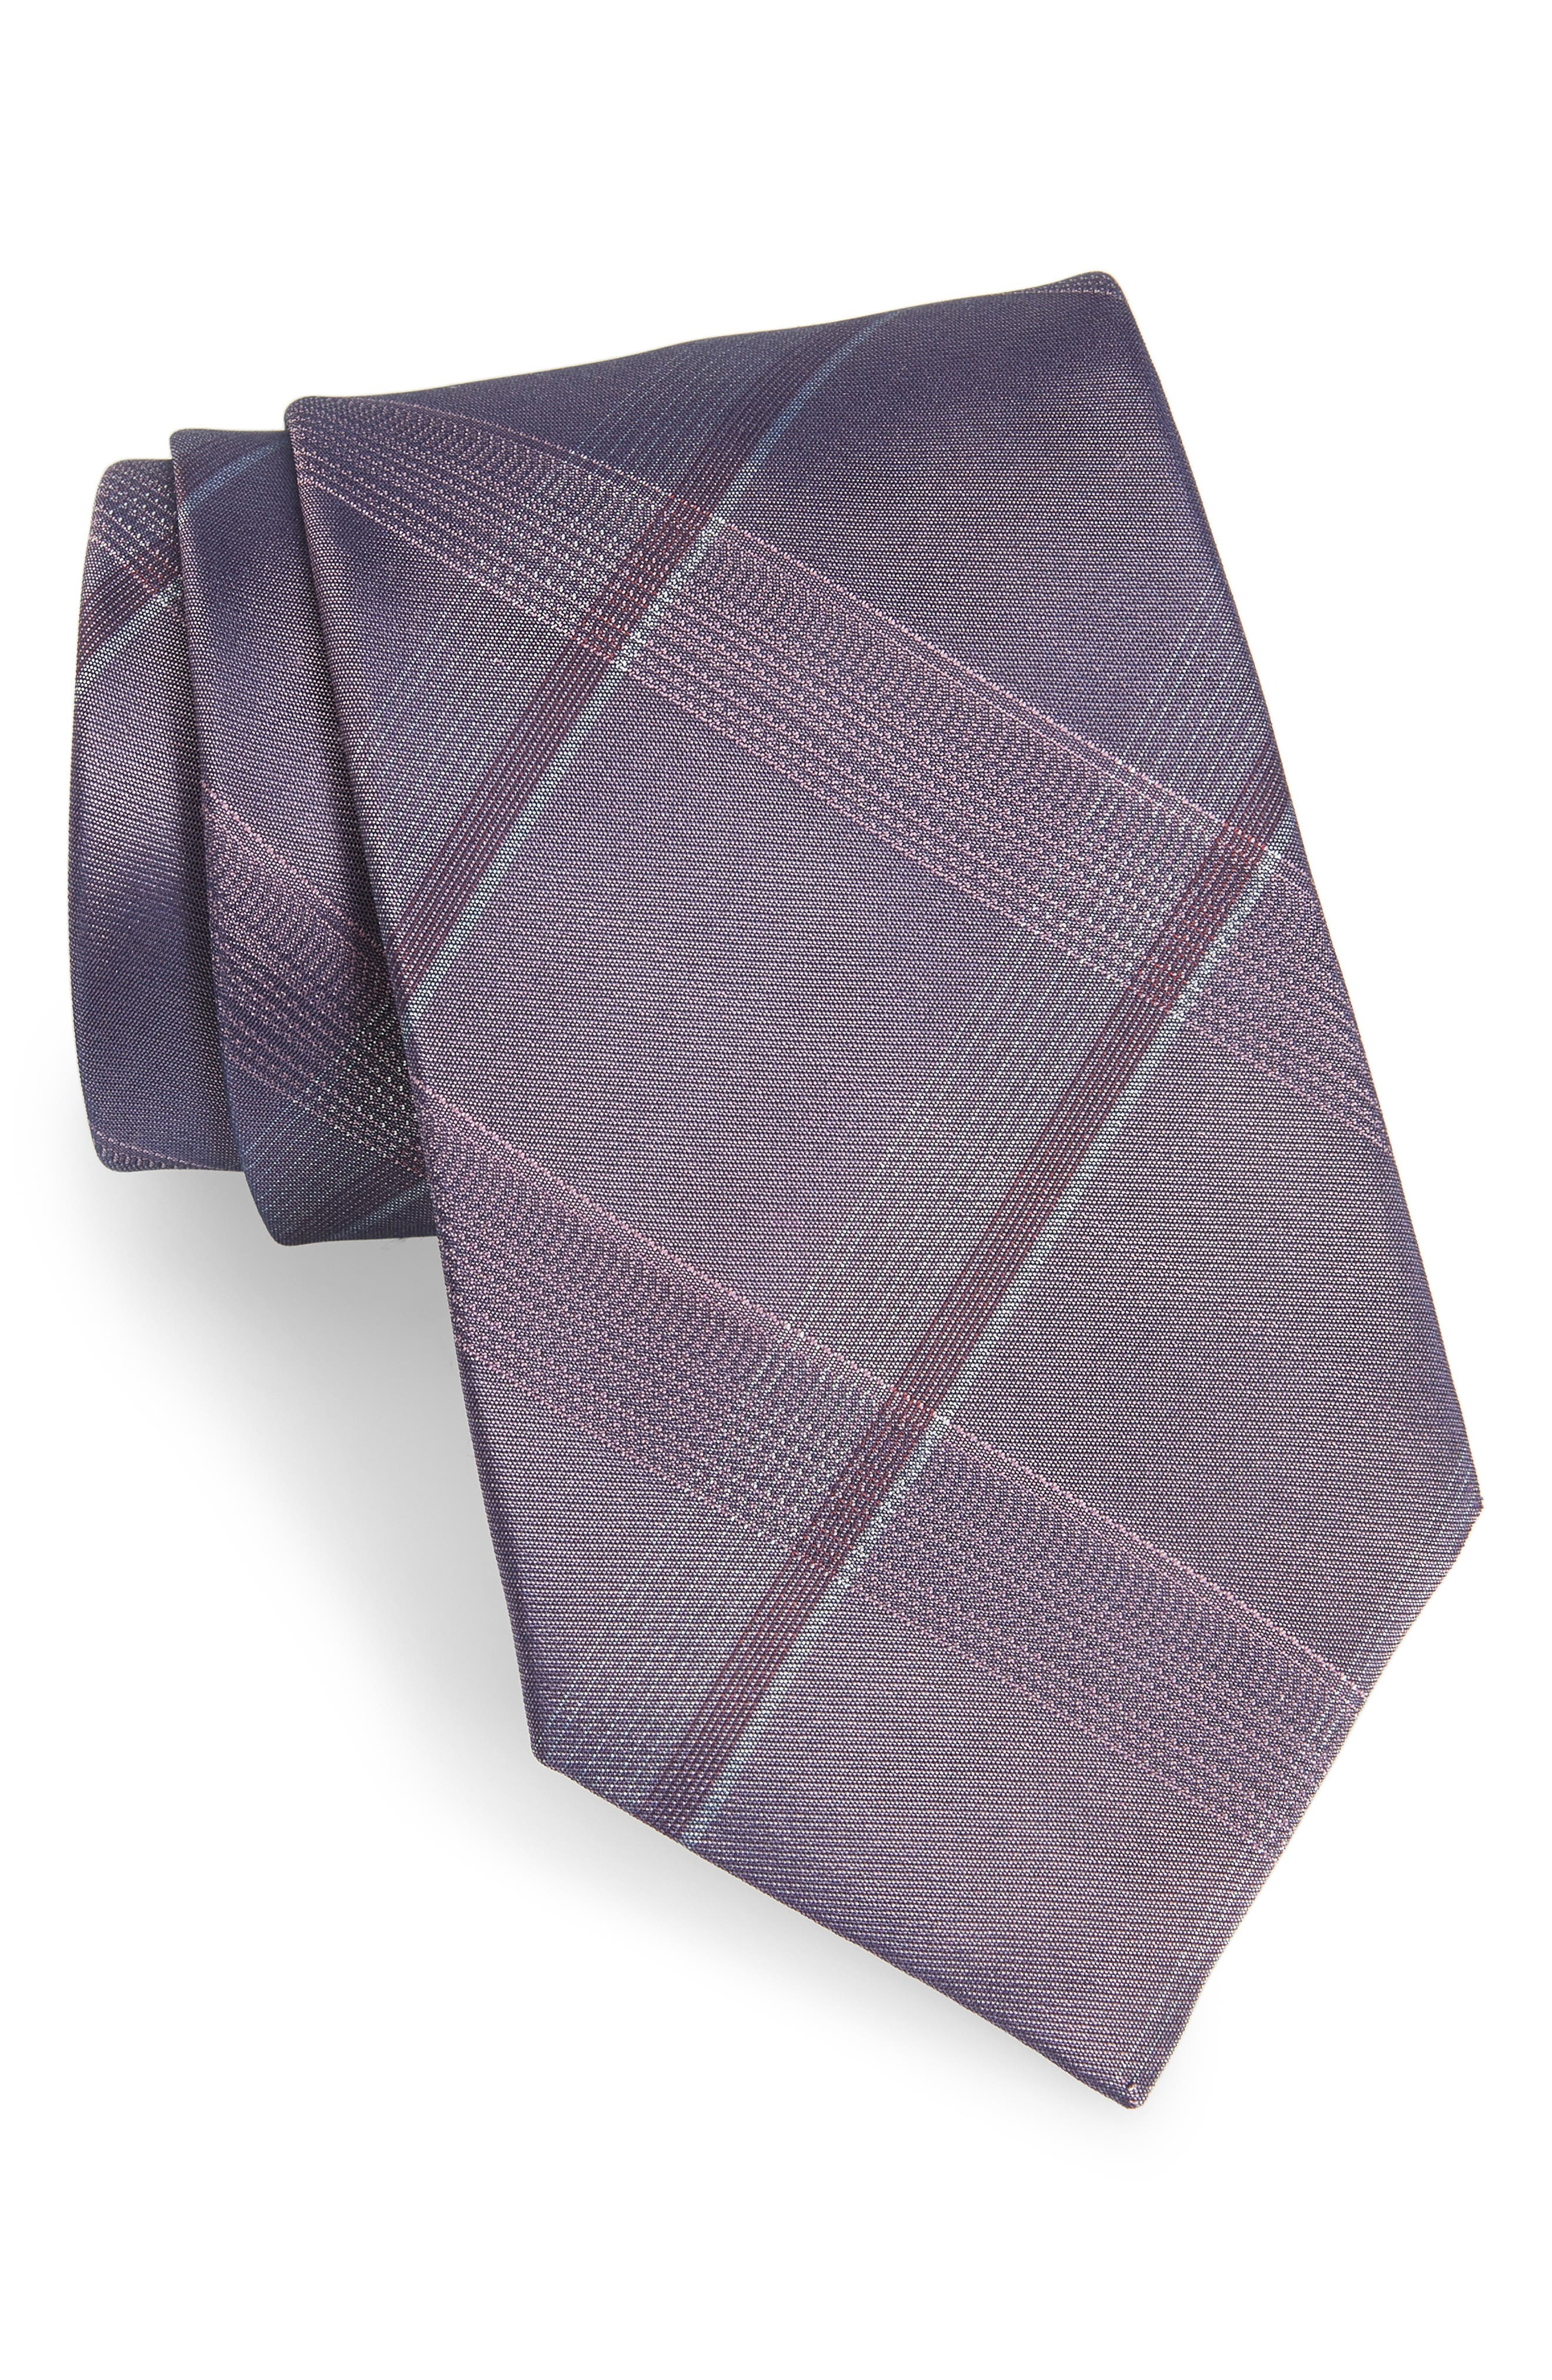 Plaid Silk Tie,                             Main thumbnail 1, color,                             Purple